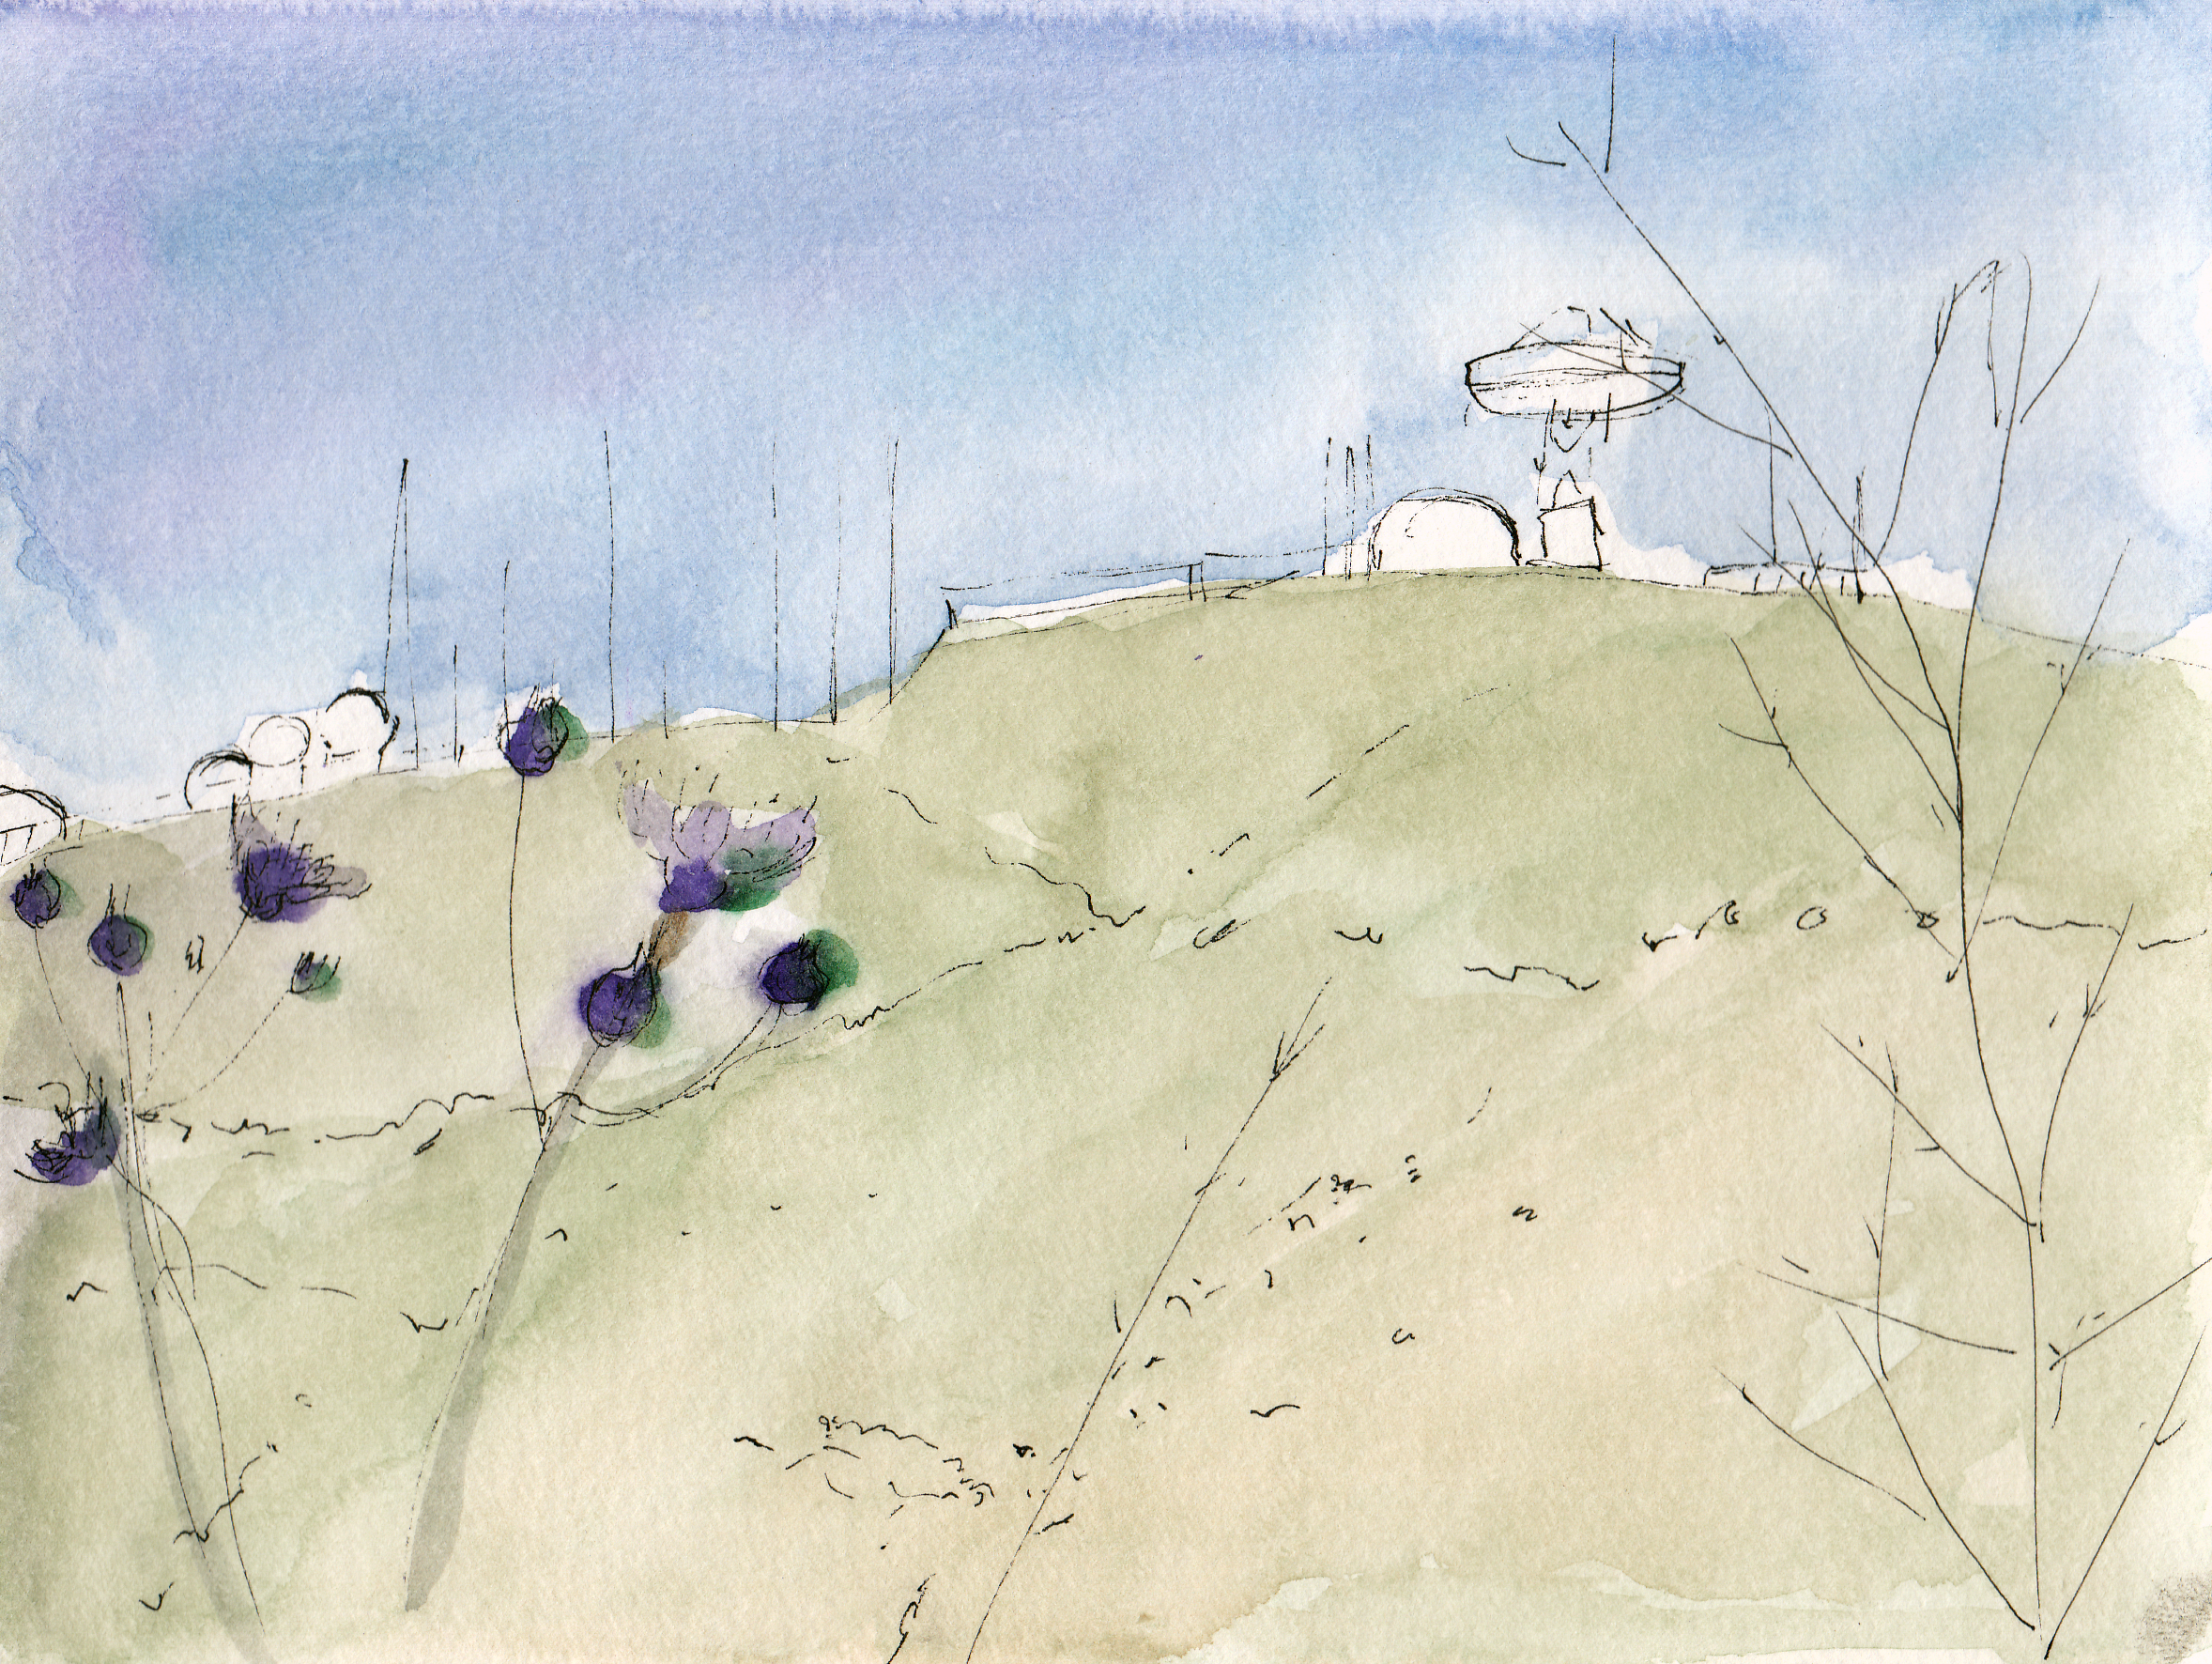 Hillary Mushkin | Sketch of Laguna Peak Tracking Station, 2016 | watercolor and ink on paper